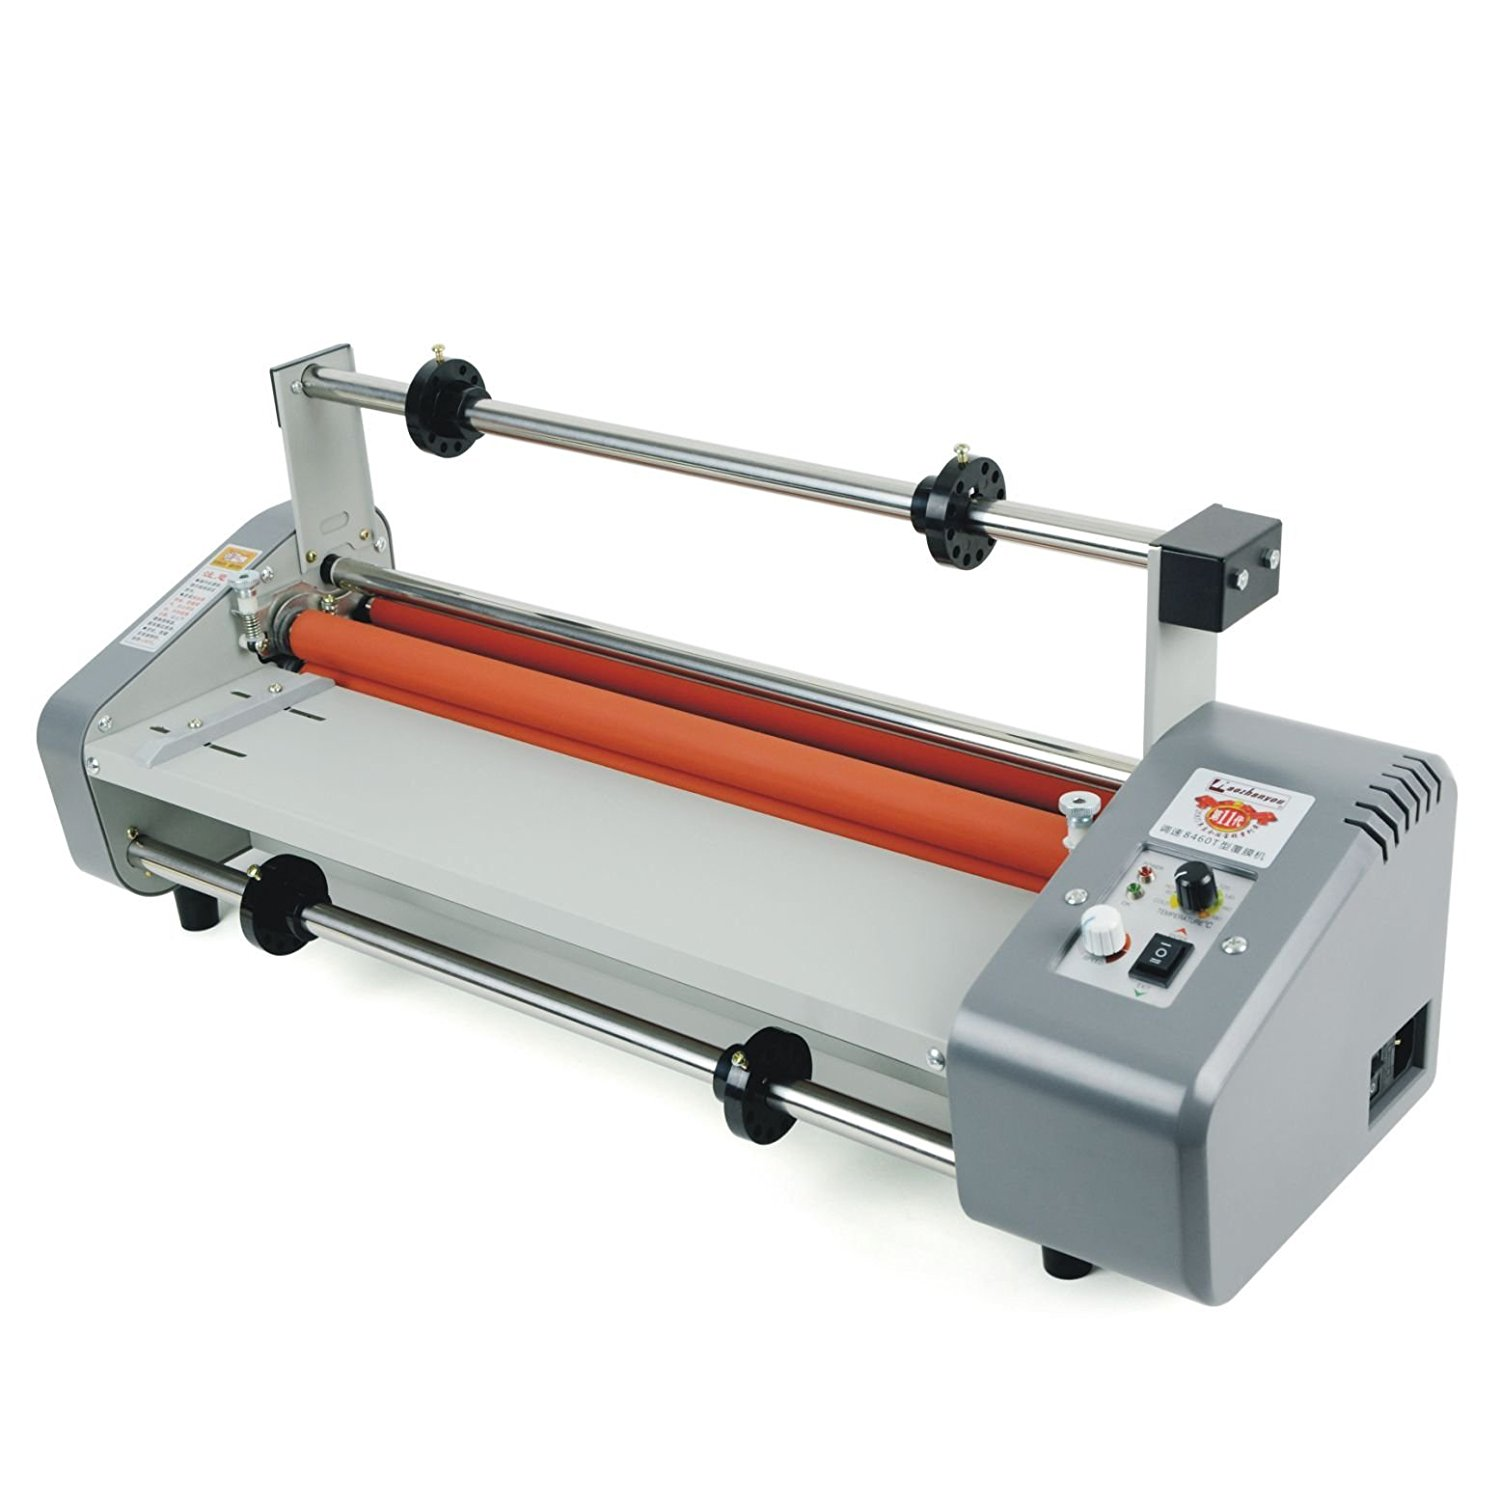 """Welljoin NEW 17.5"""" Laminator Four Rollers Roll Laminating Machine Hottest8460T"""